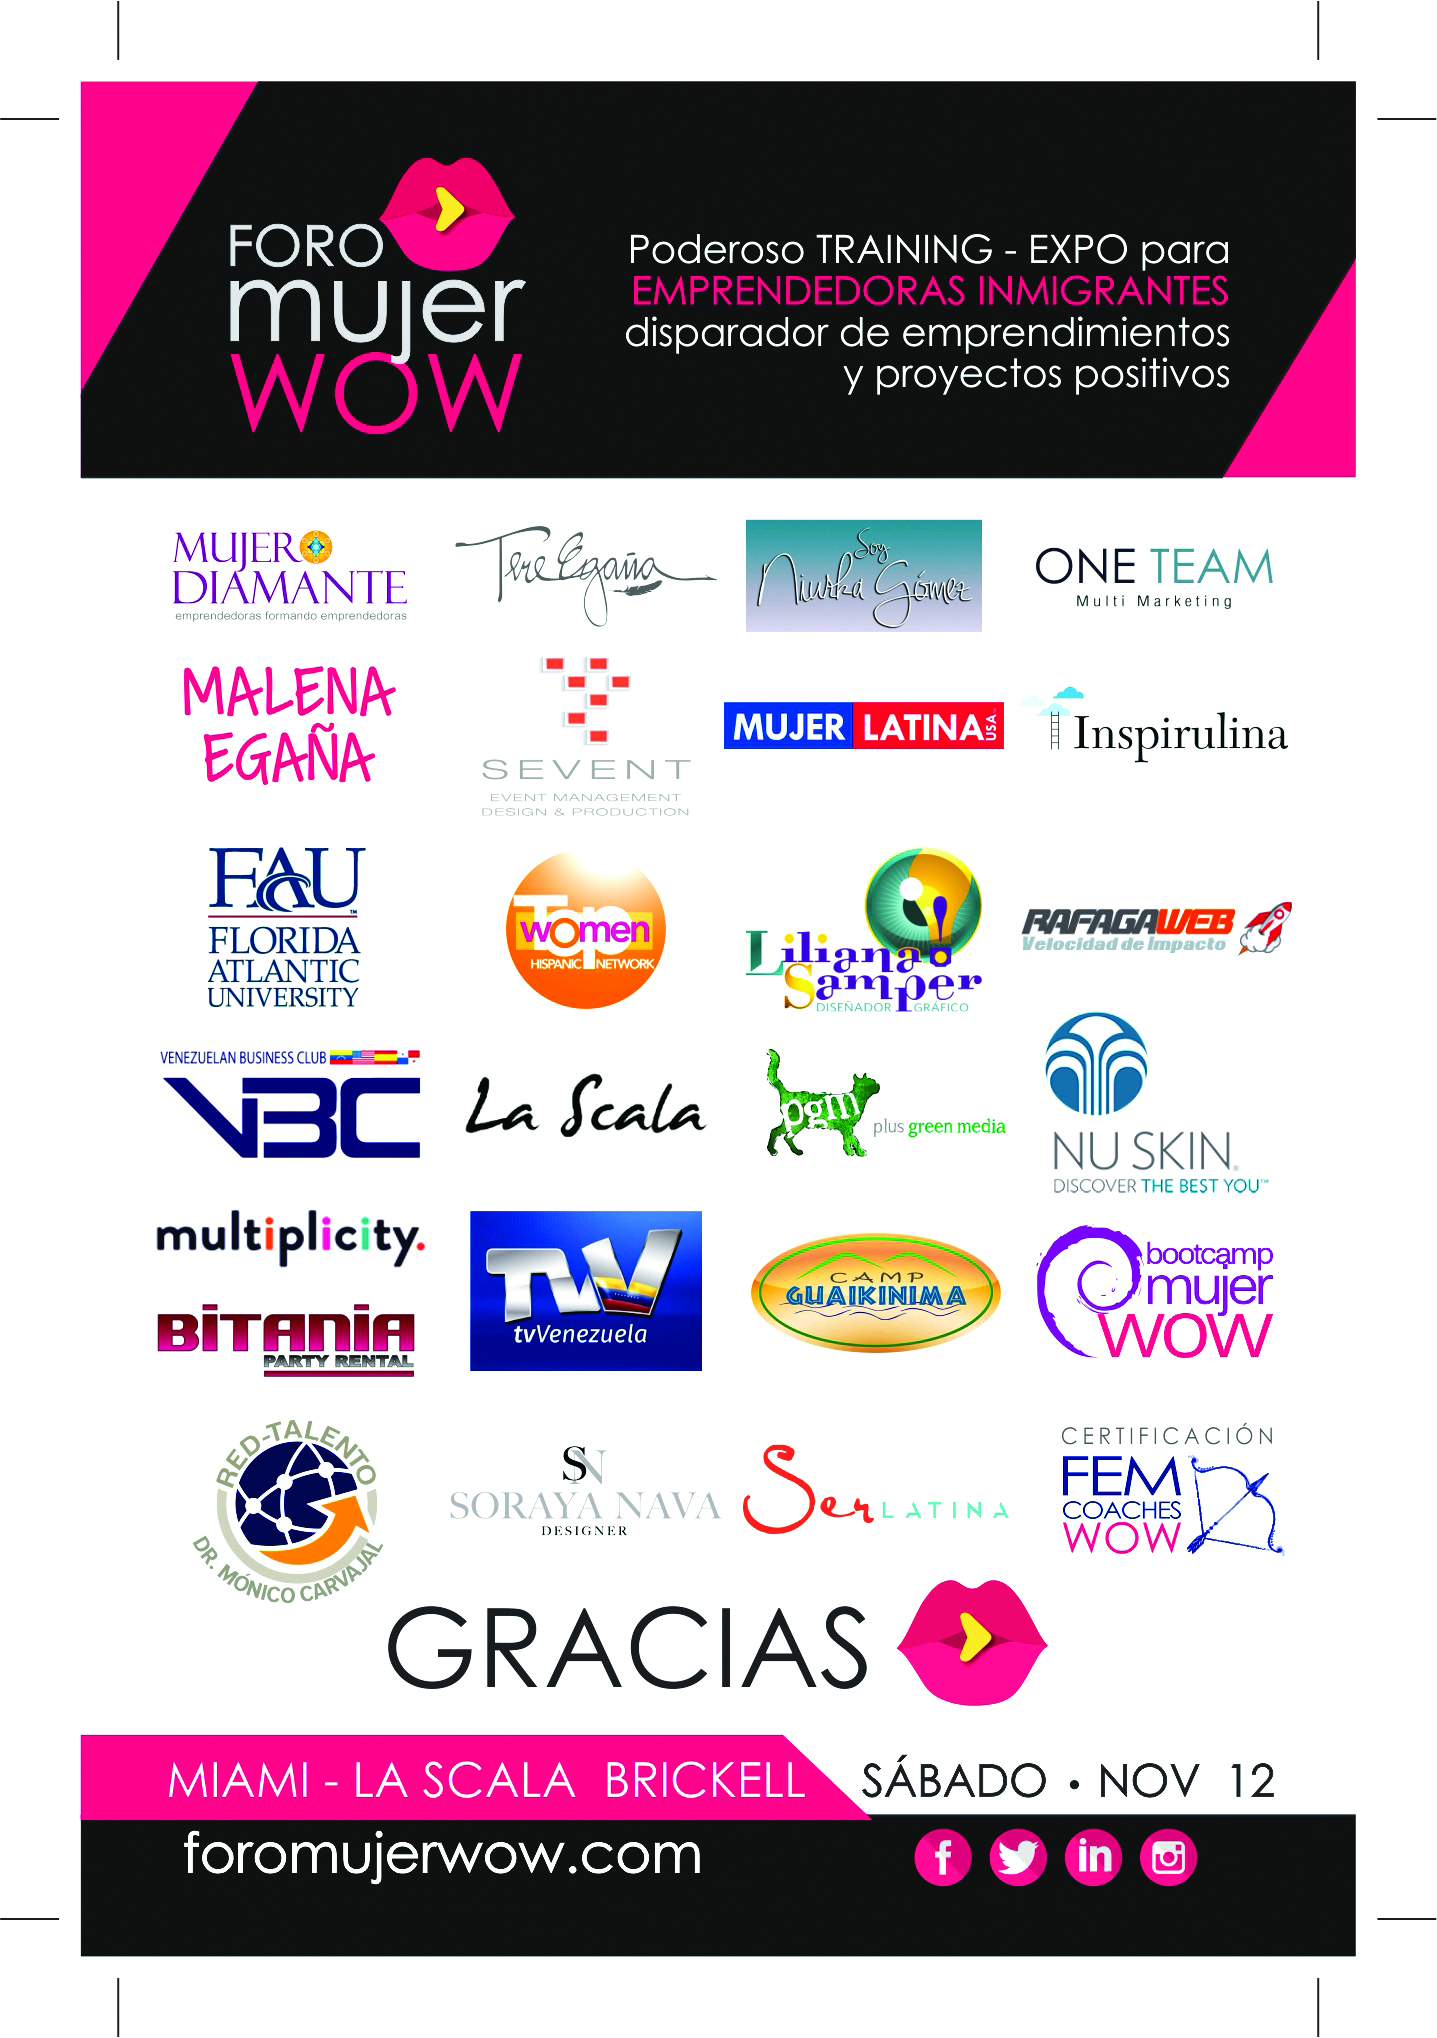 COLABORADORES FORO MUJER WOW 2016